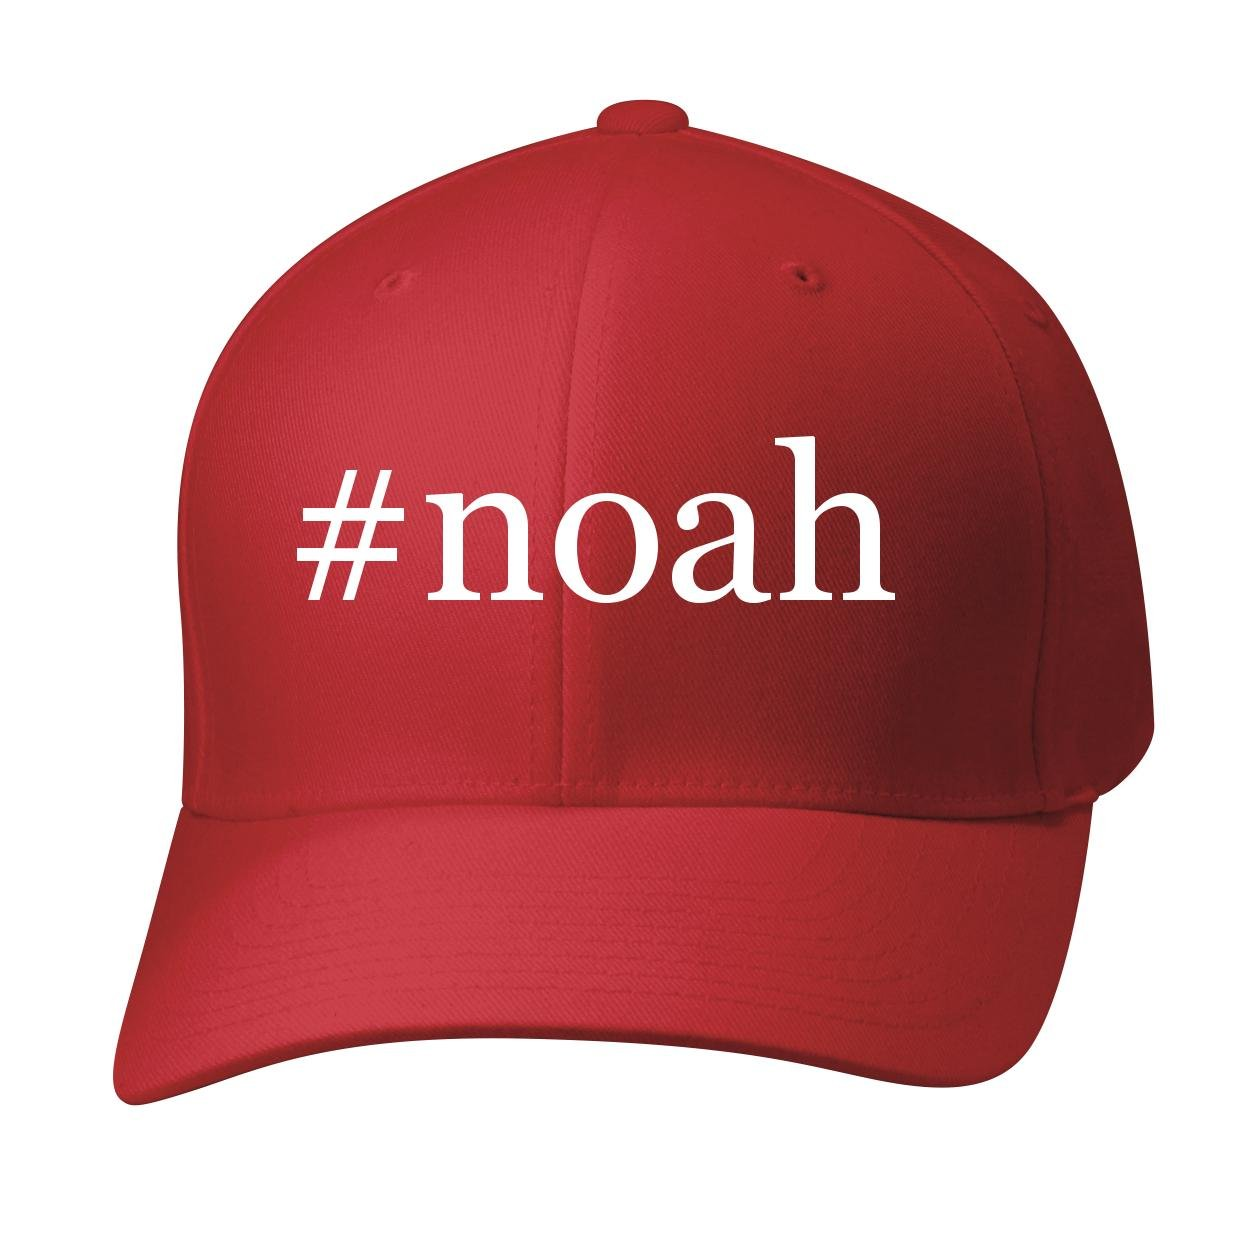 BH Cool Designs  noah - Baseball Hat Cap Adult at Amazon Men s Clothing  store  9328389cd43